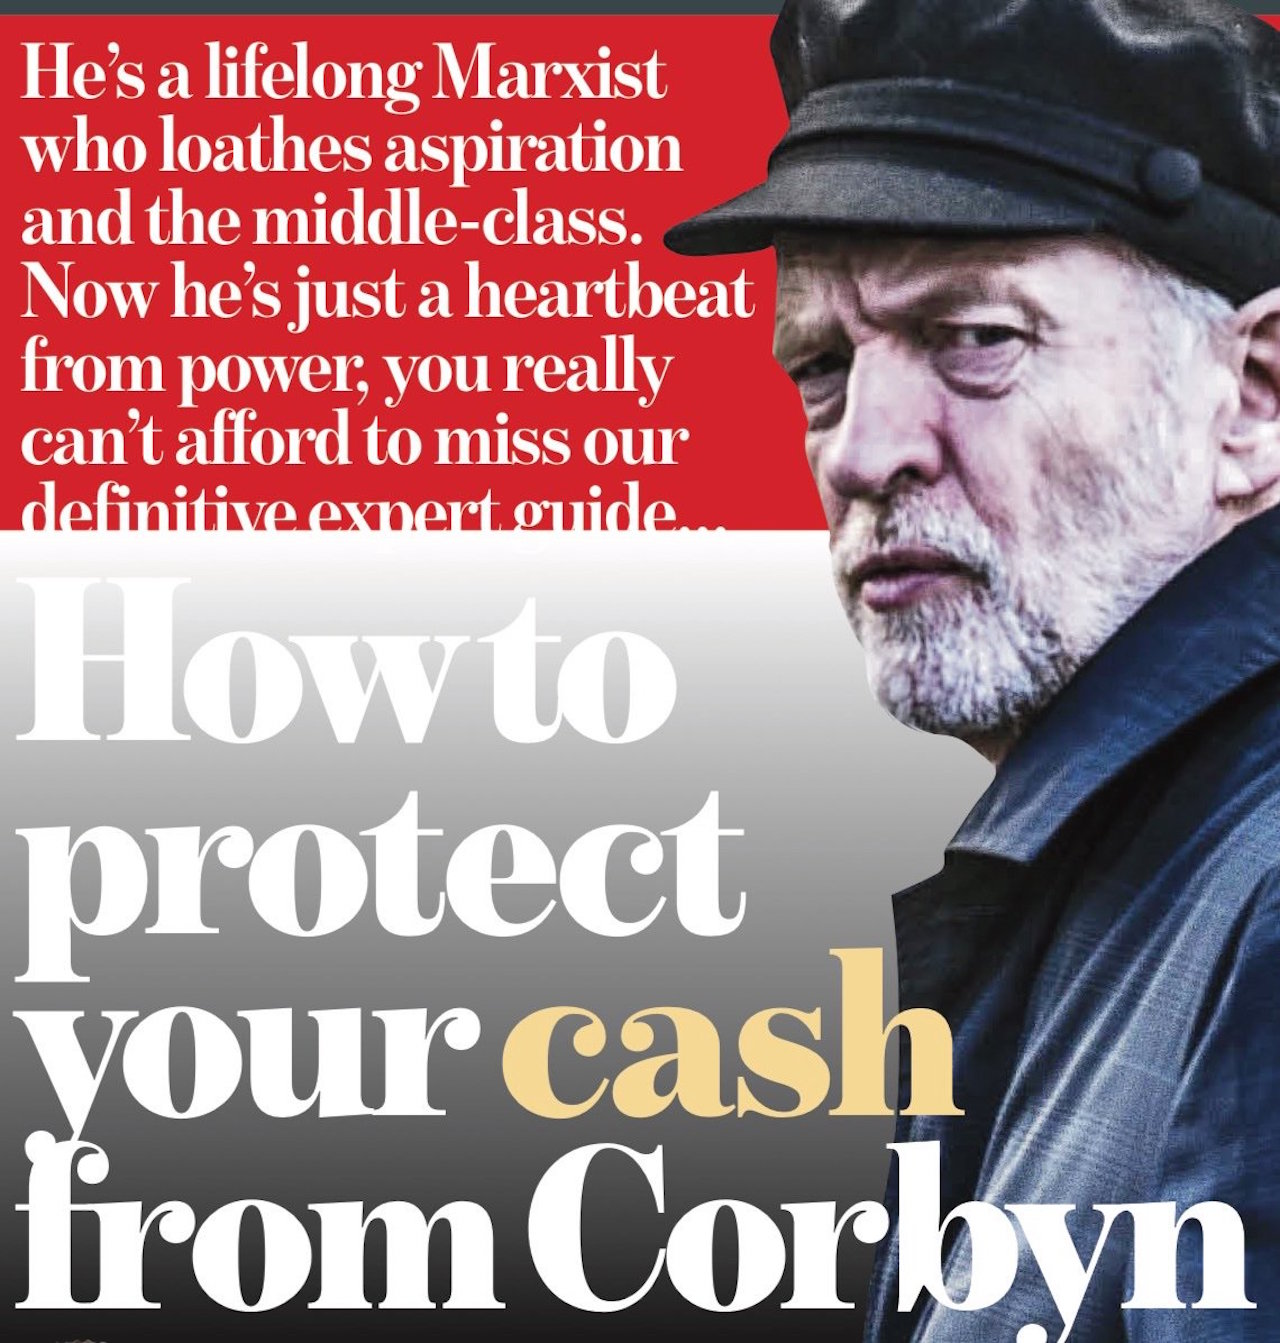 Überschrift in der Mail on Sunday: How to protect your cash from Corbyn